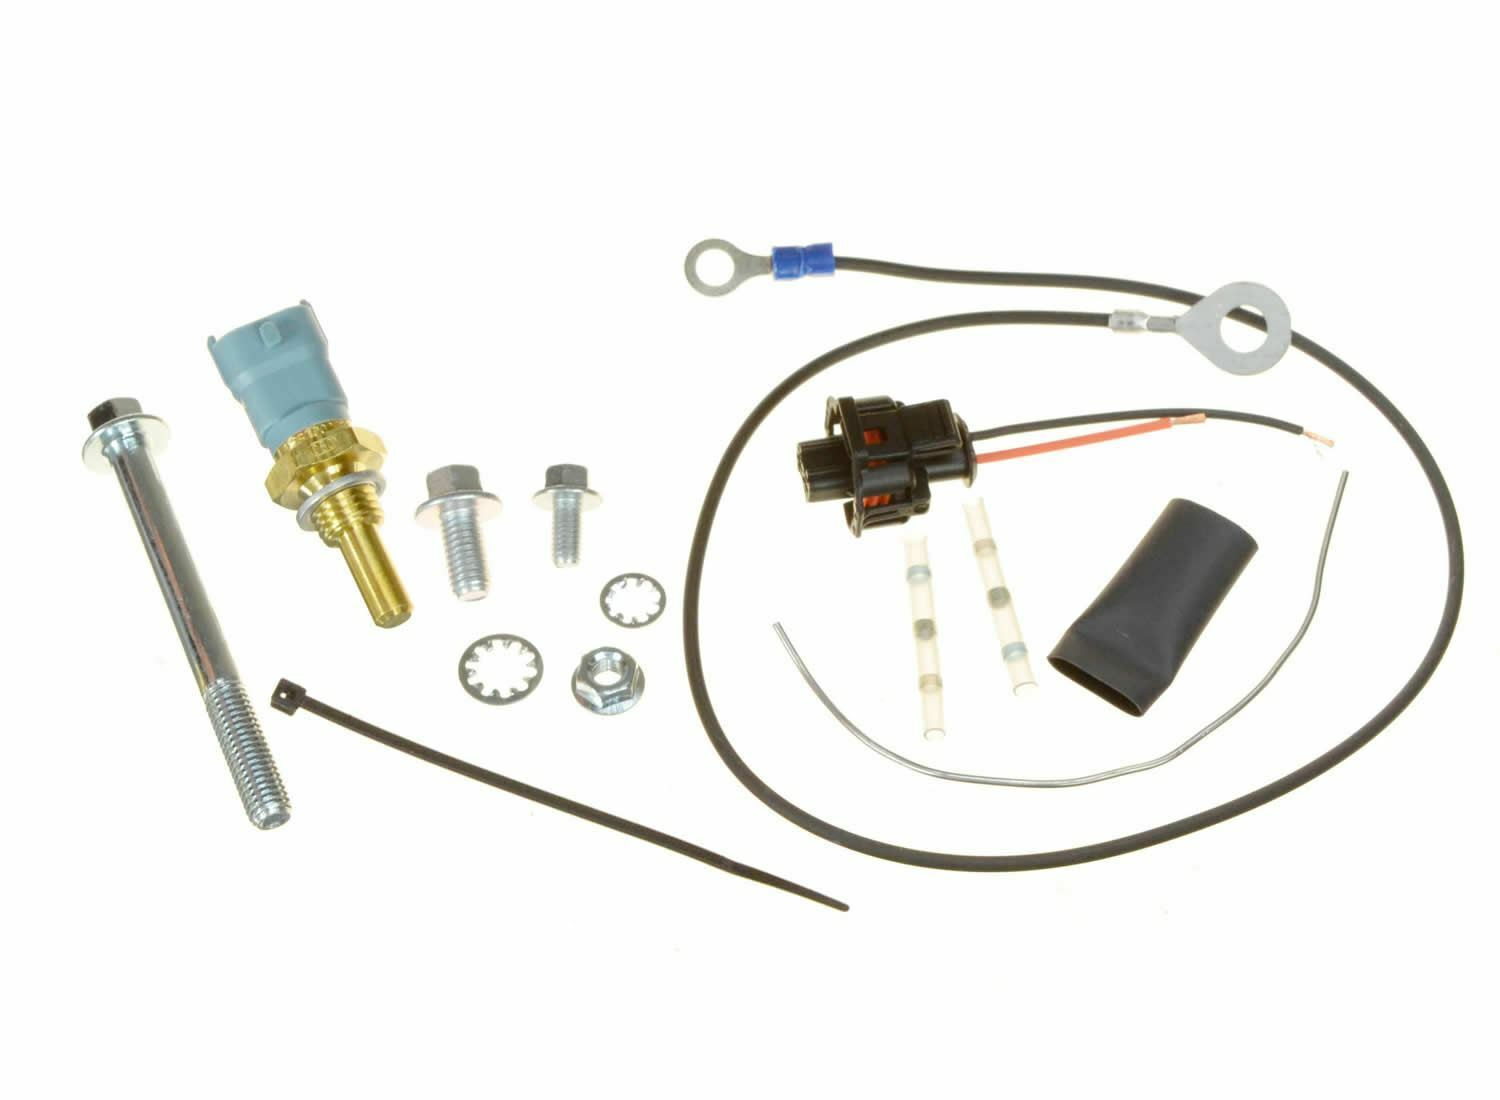 Genuine Kohler Engines Kit Wiring Harness Efi 24 755 134 S For 5 0 Engine 2 1 Of 1free Shipping See More